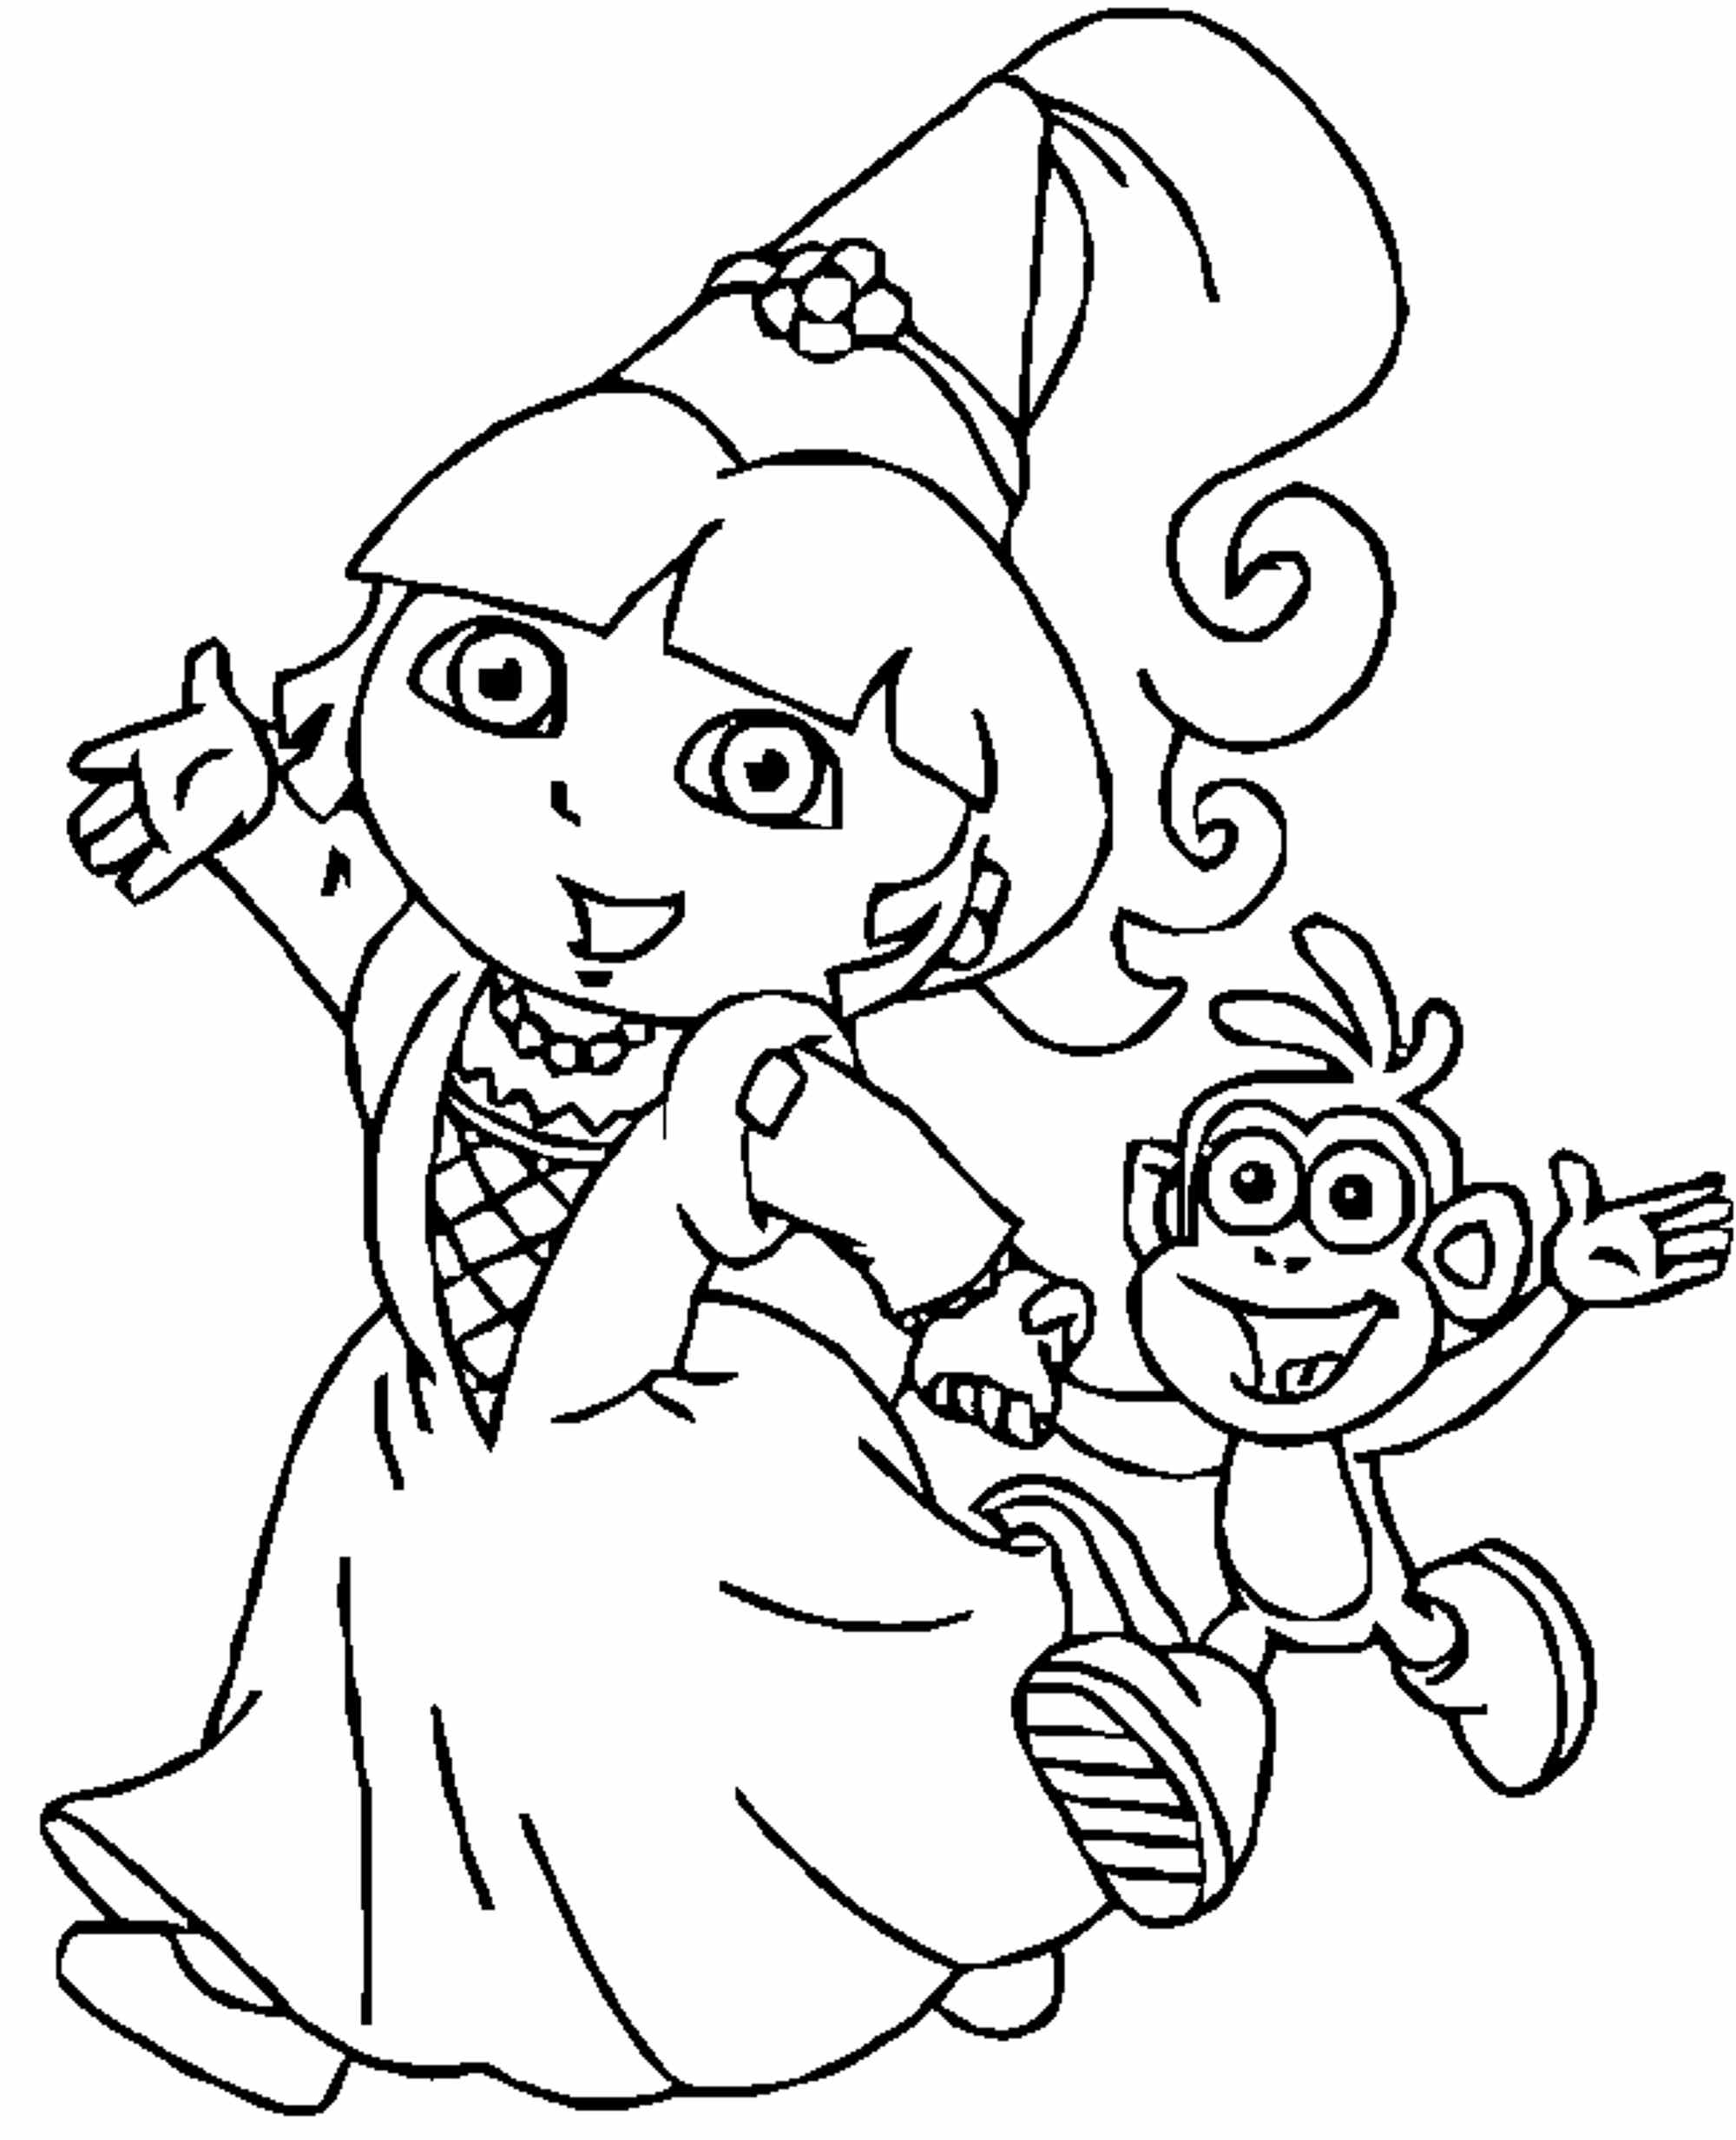 swiper coloring pages - print download dora coloring pages to learn new things